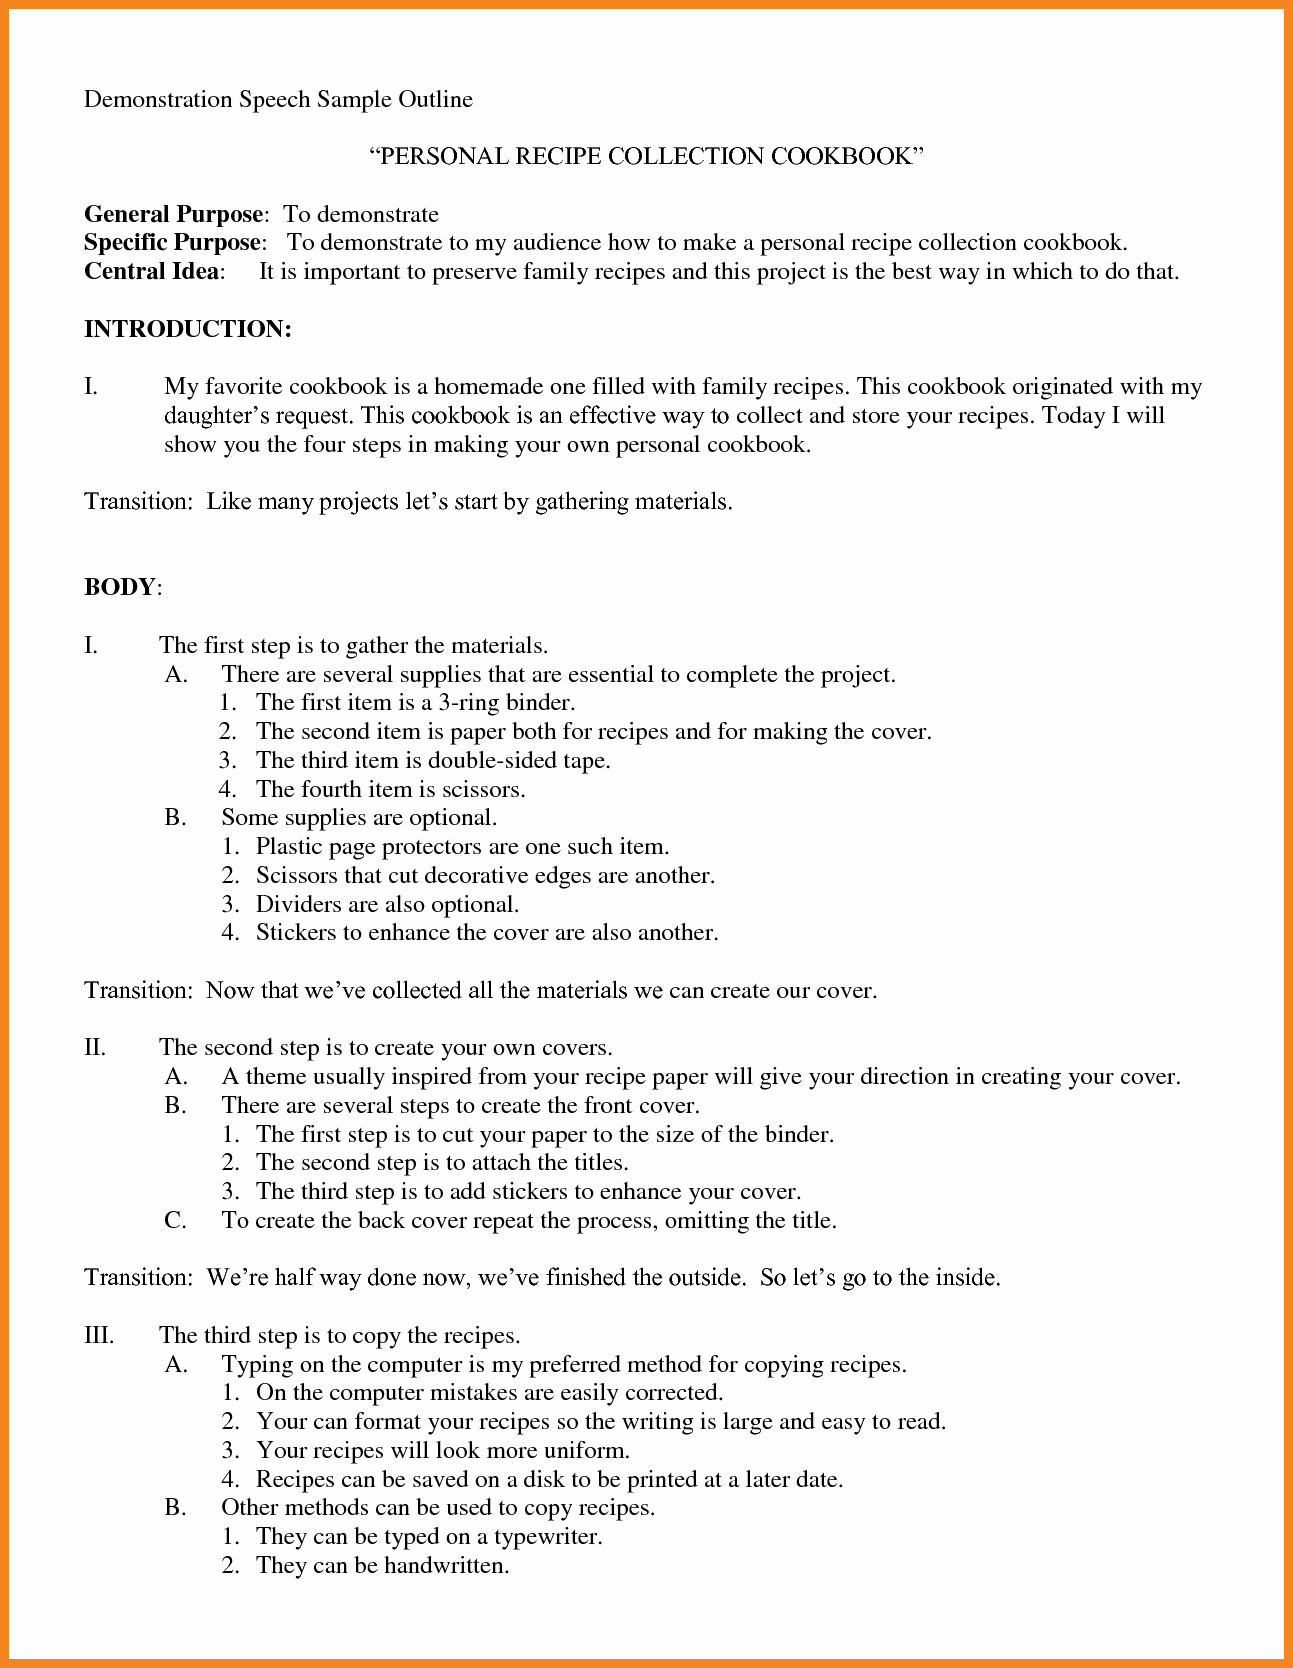 How to format A Speech Lovely Expository Speech Outline Bamboodownunder